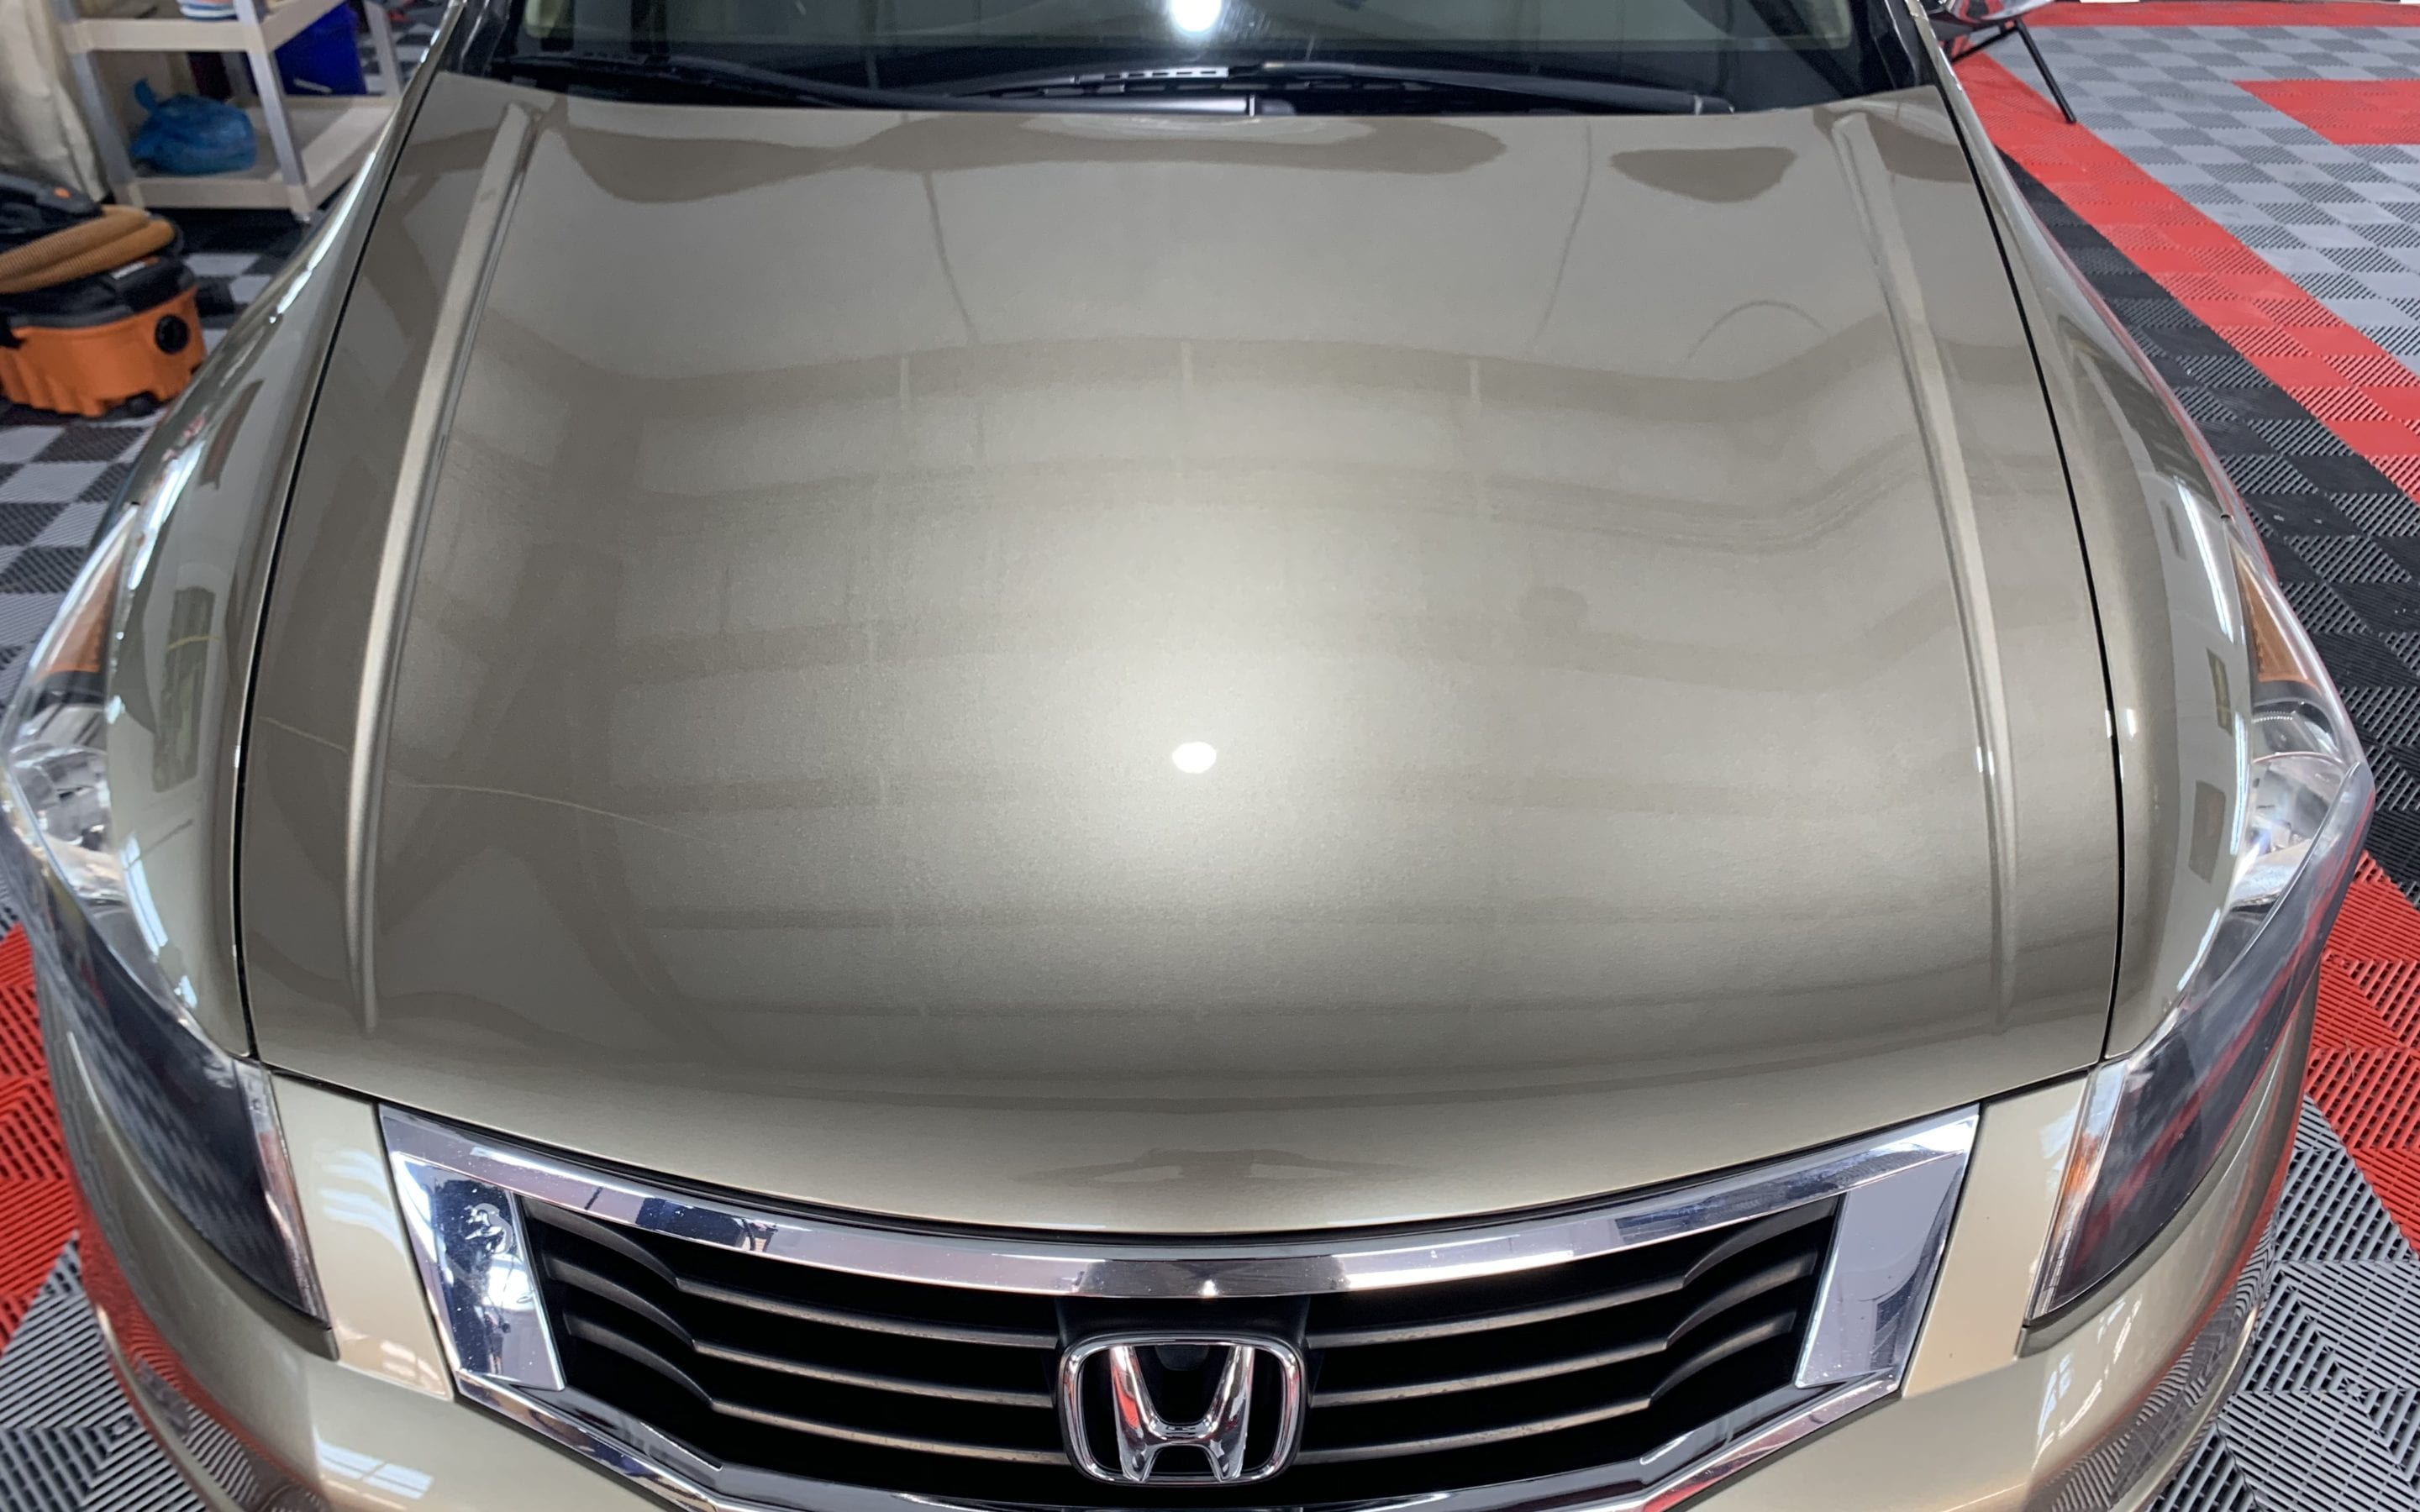 Ceramic Coating of a 2008 Honda Accord